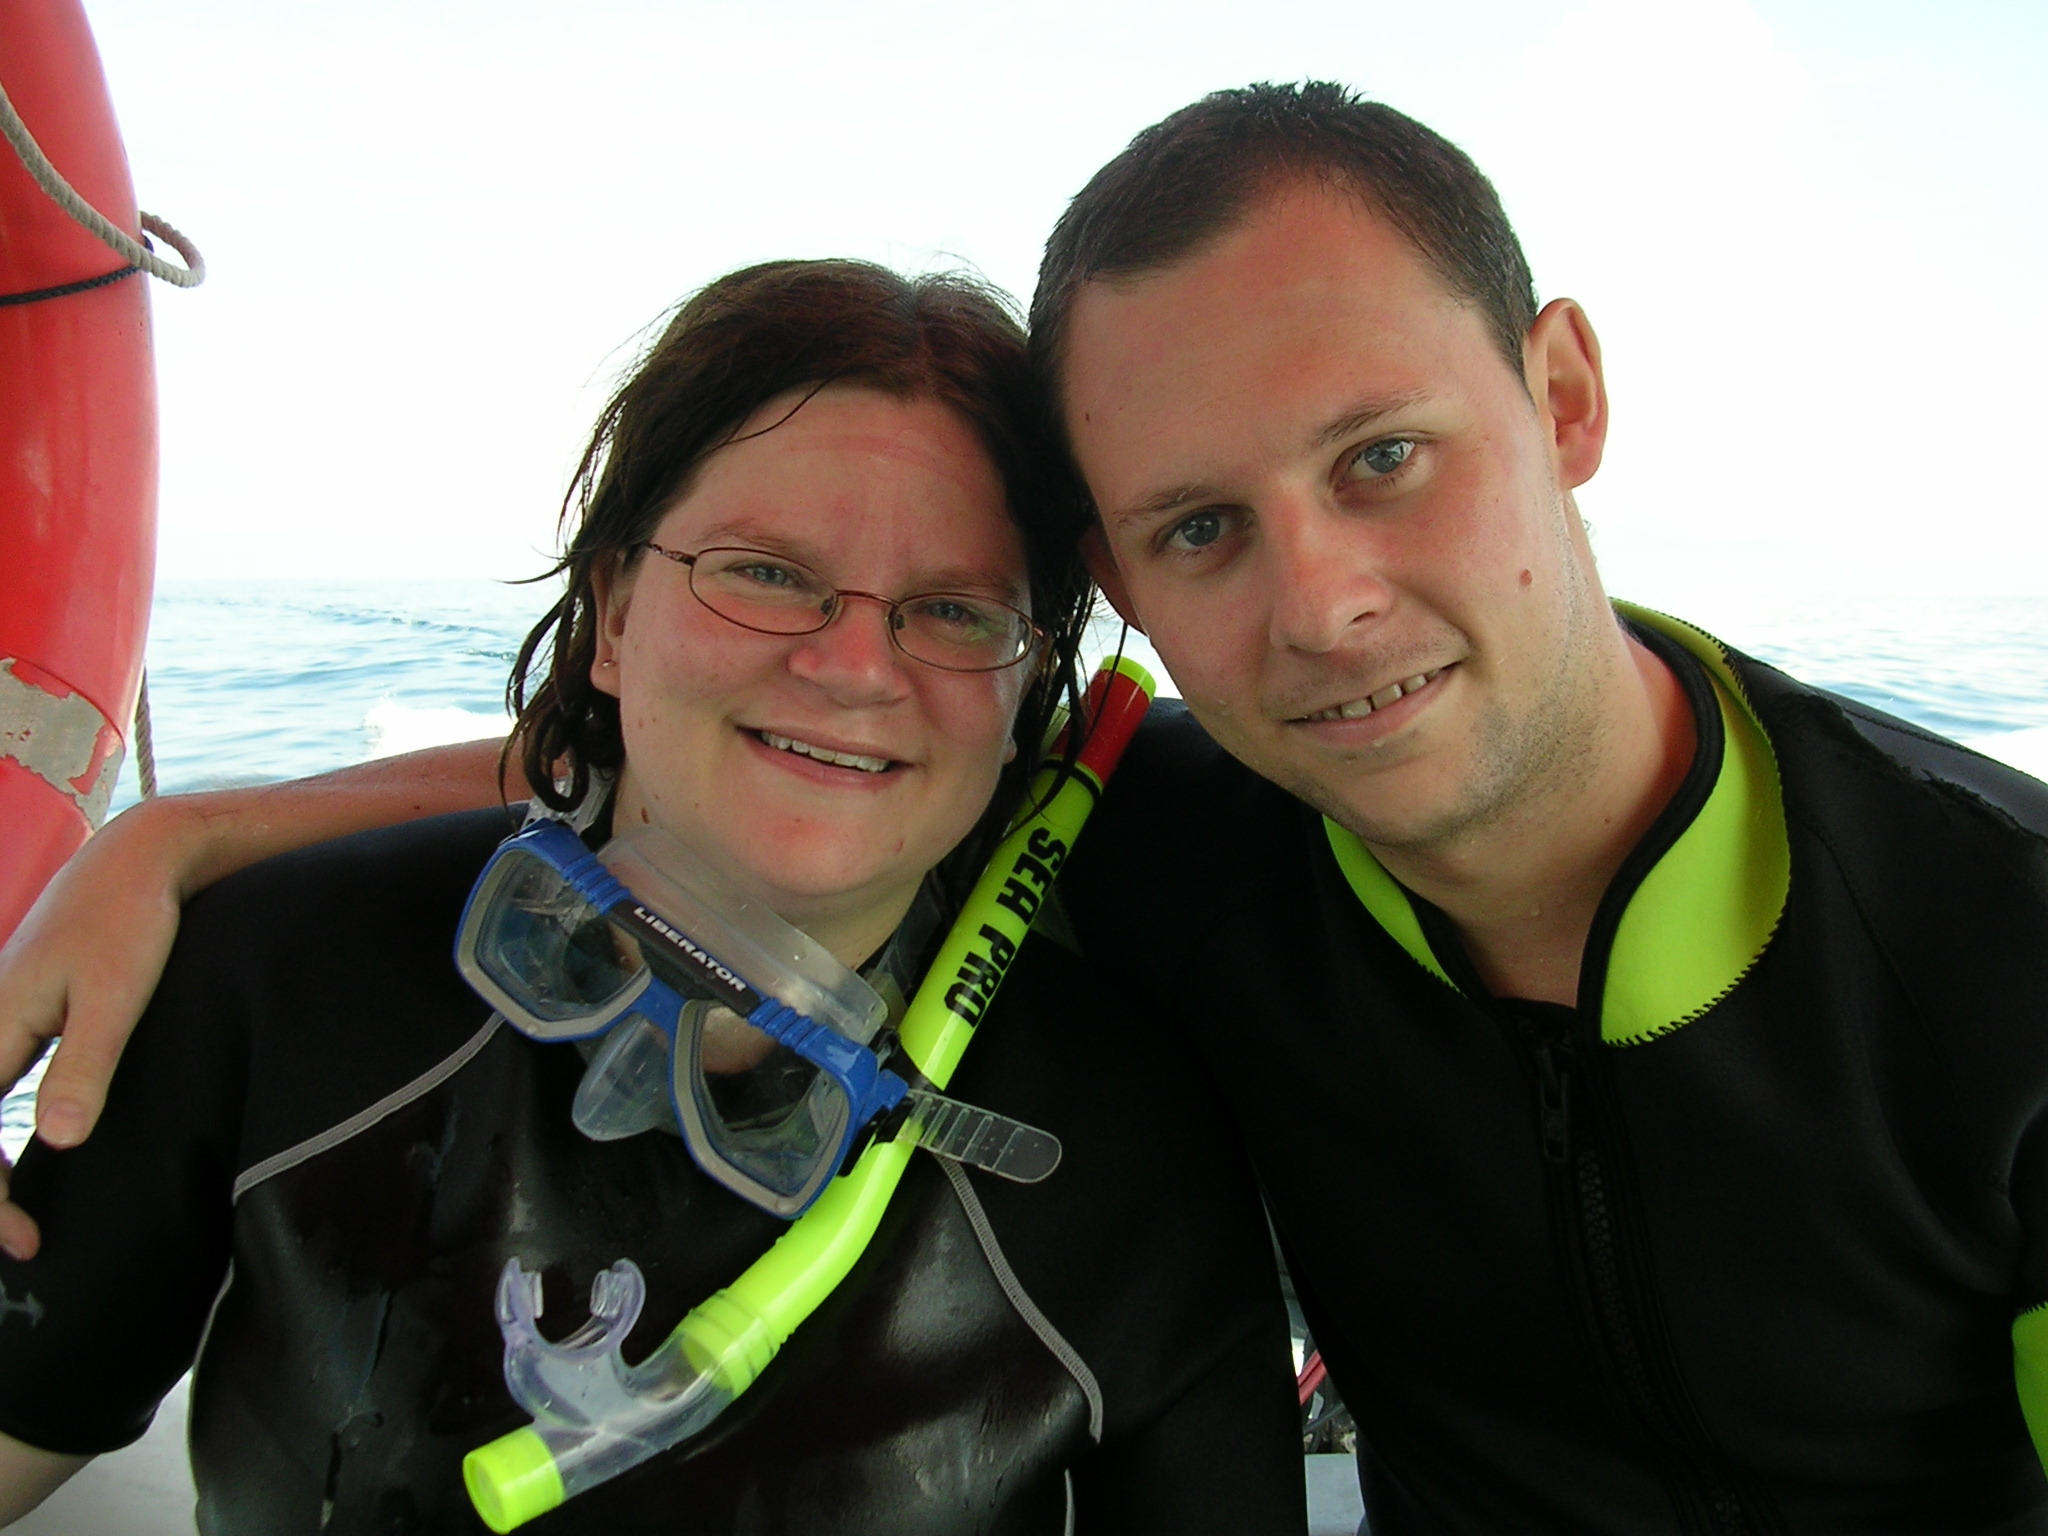 Just after our 2nd boat dive of the weekend